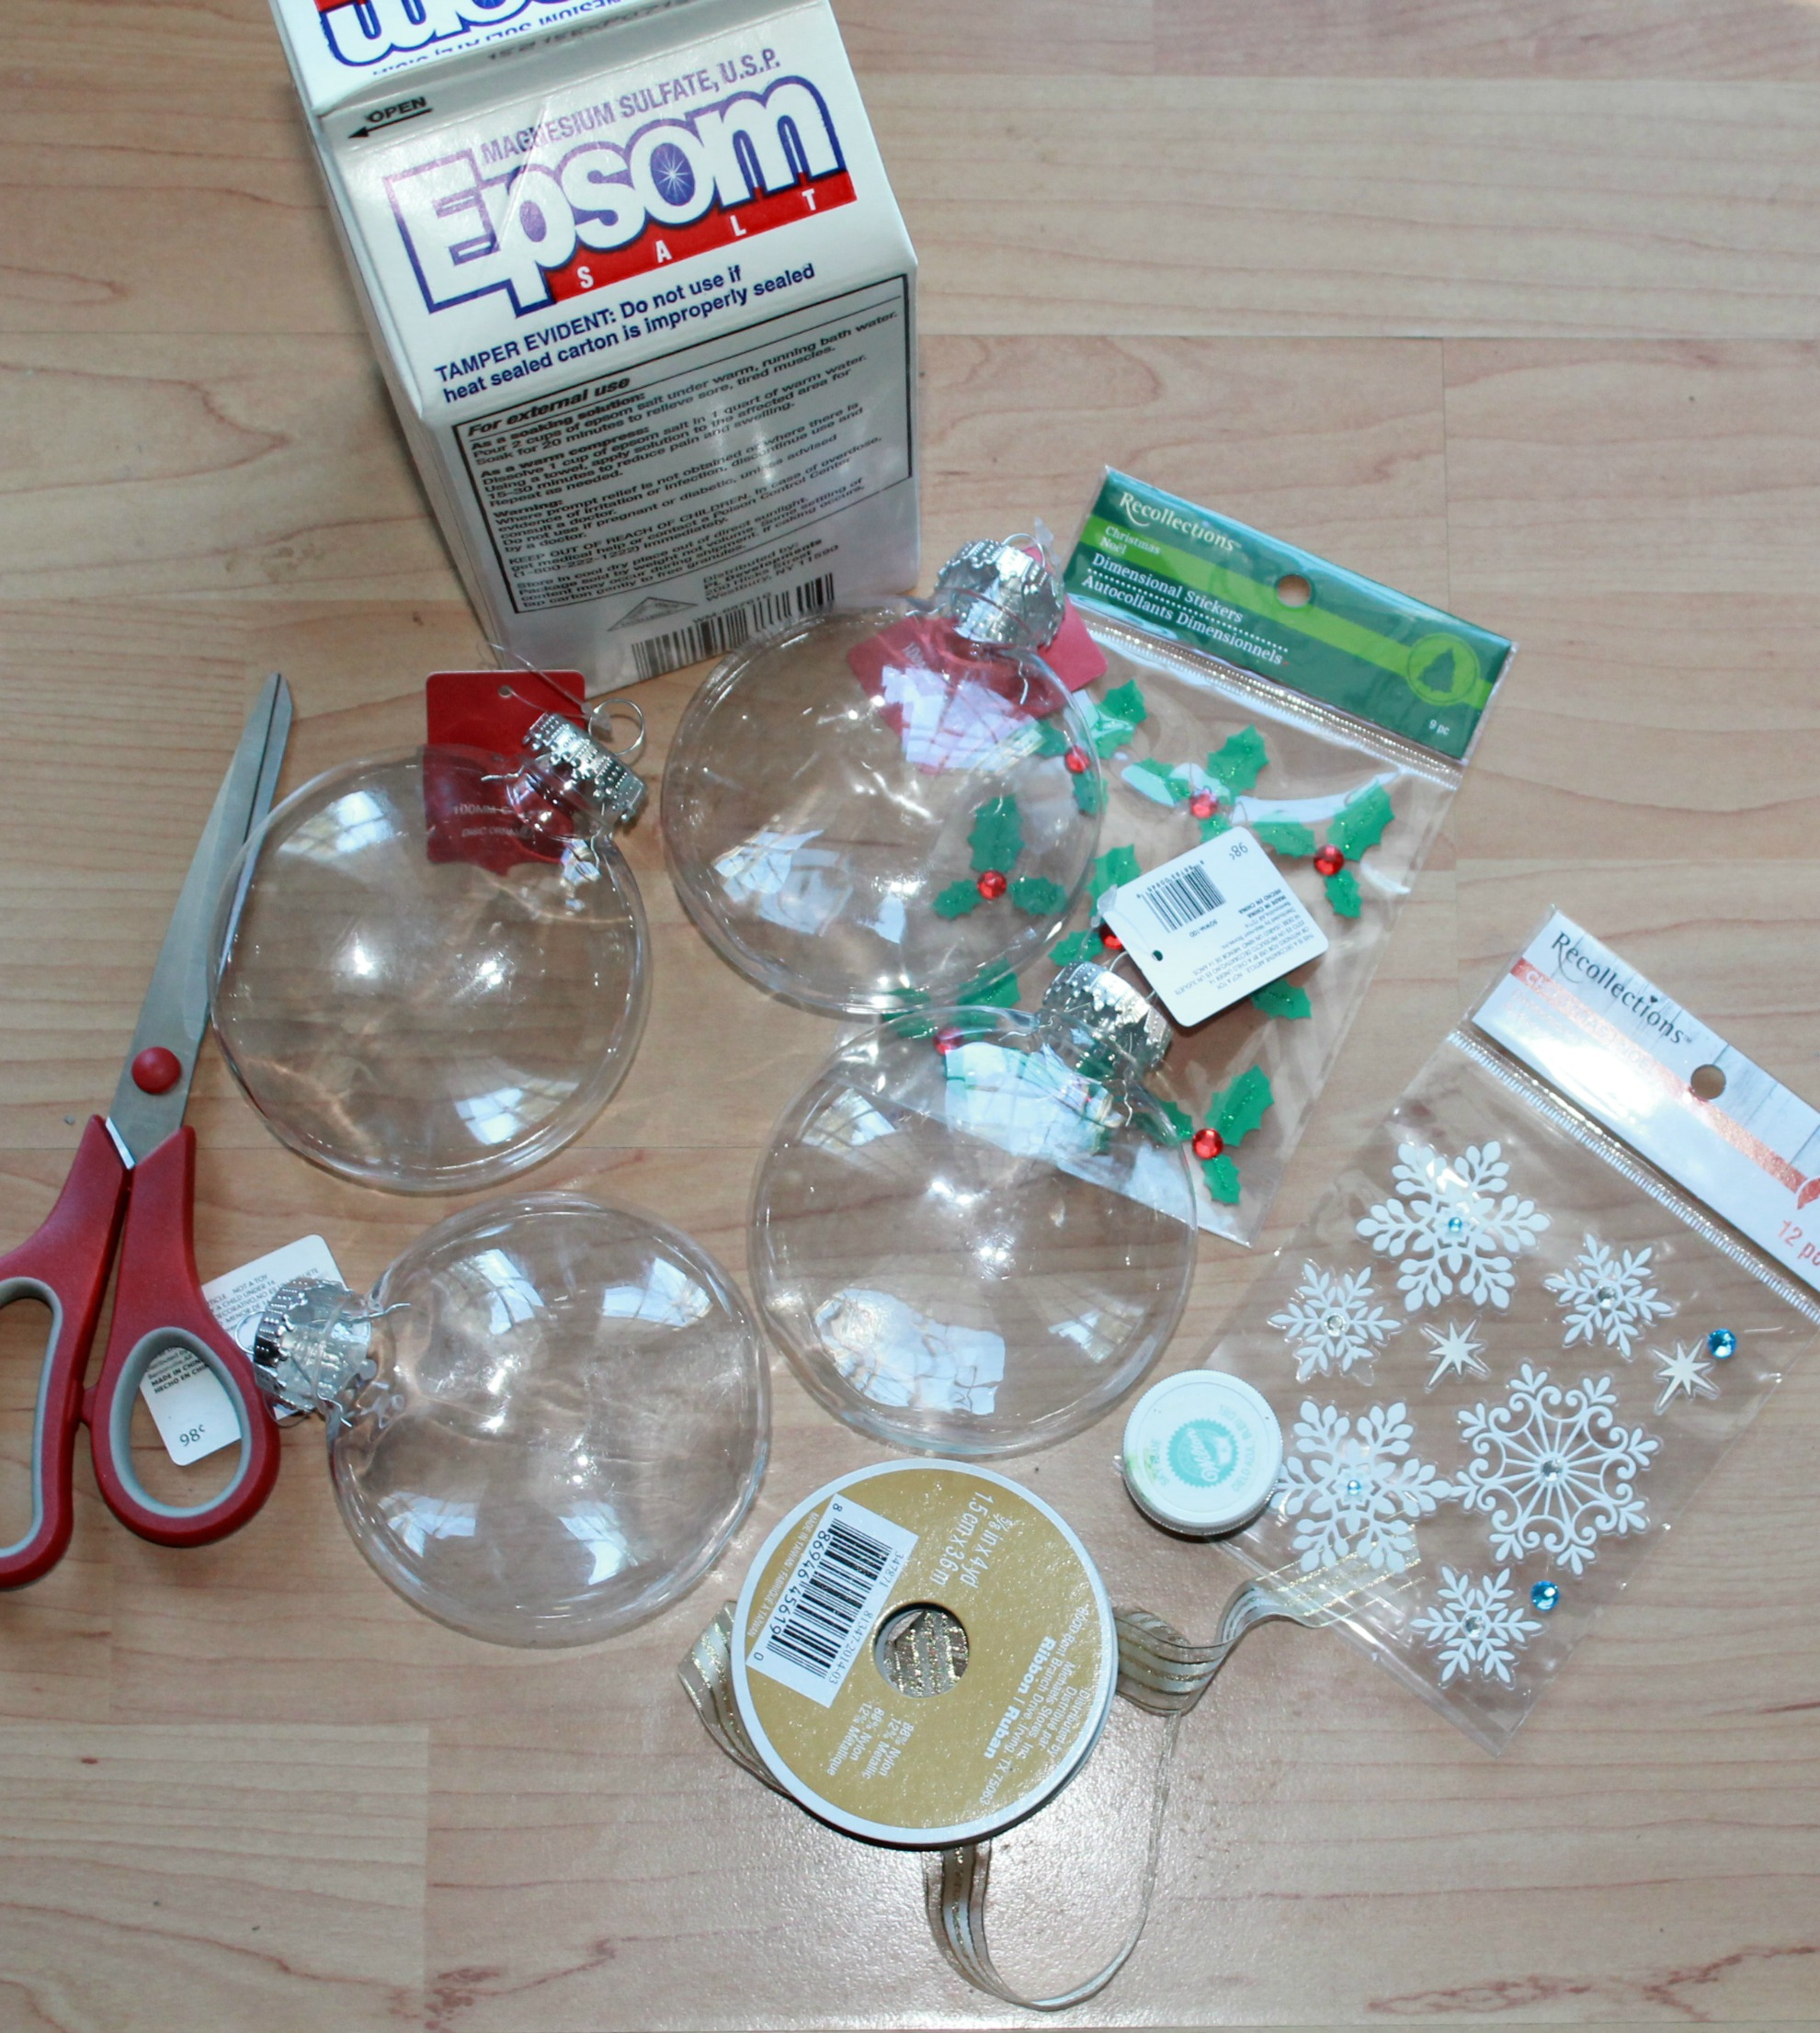 Make snowflake ornaments - Supplies Needed Snowflake Ornaments